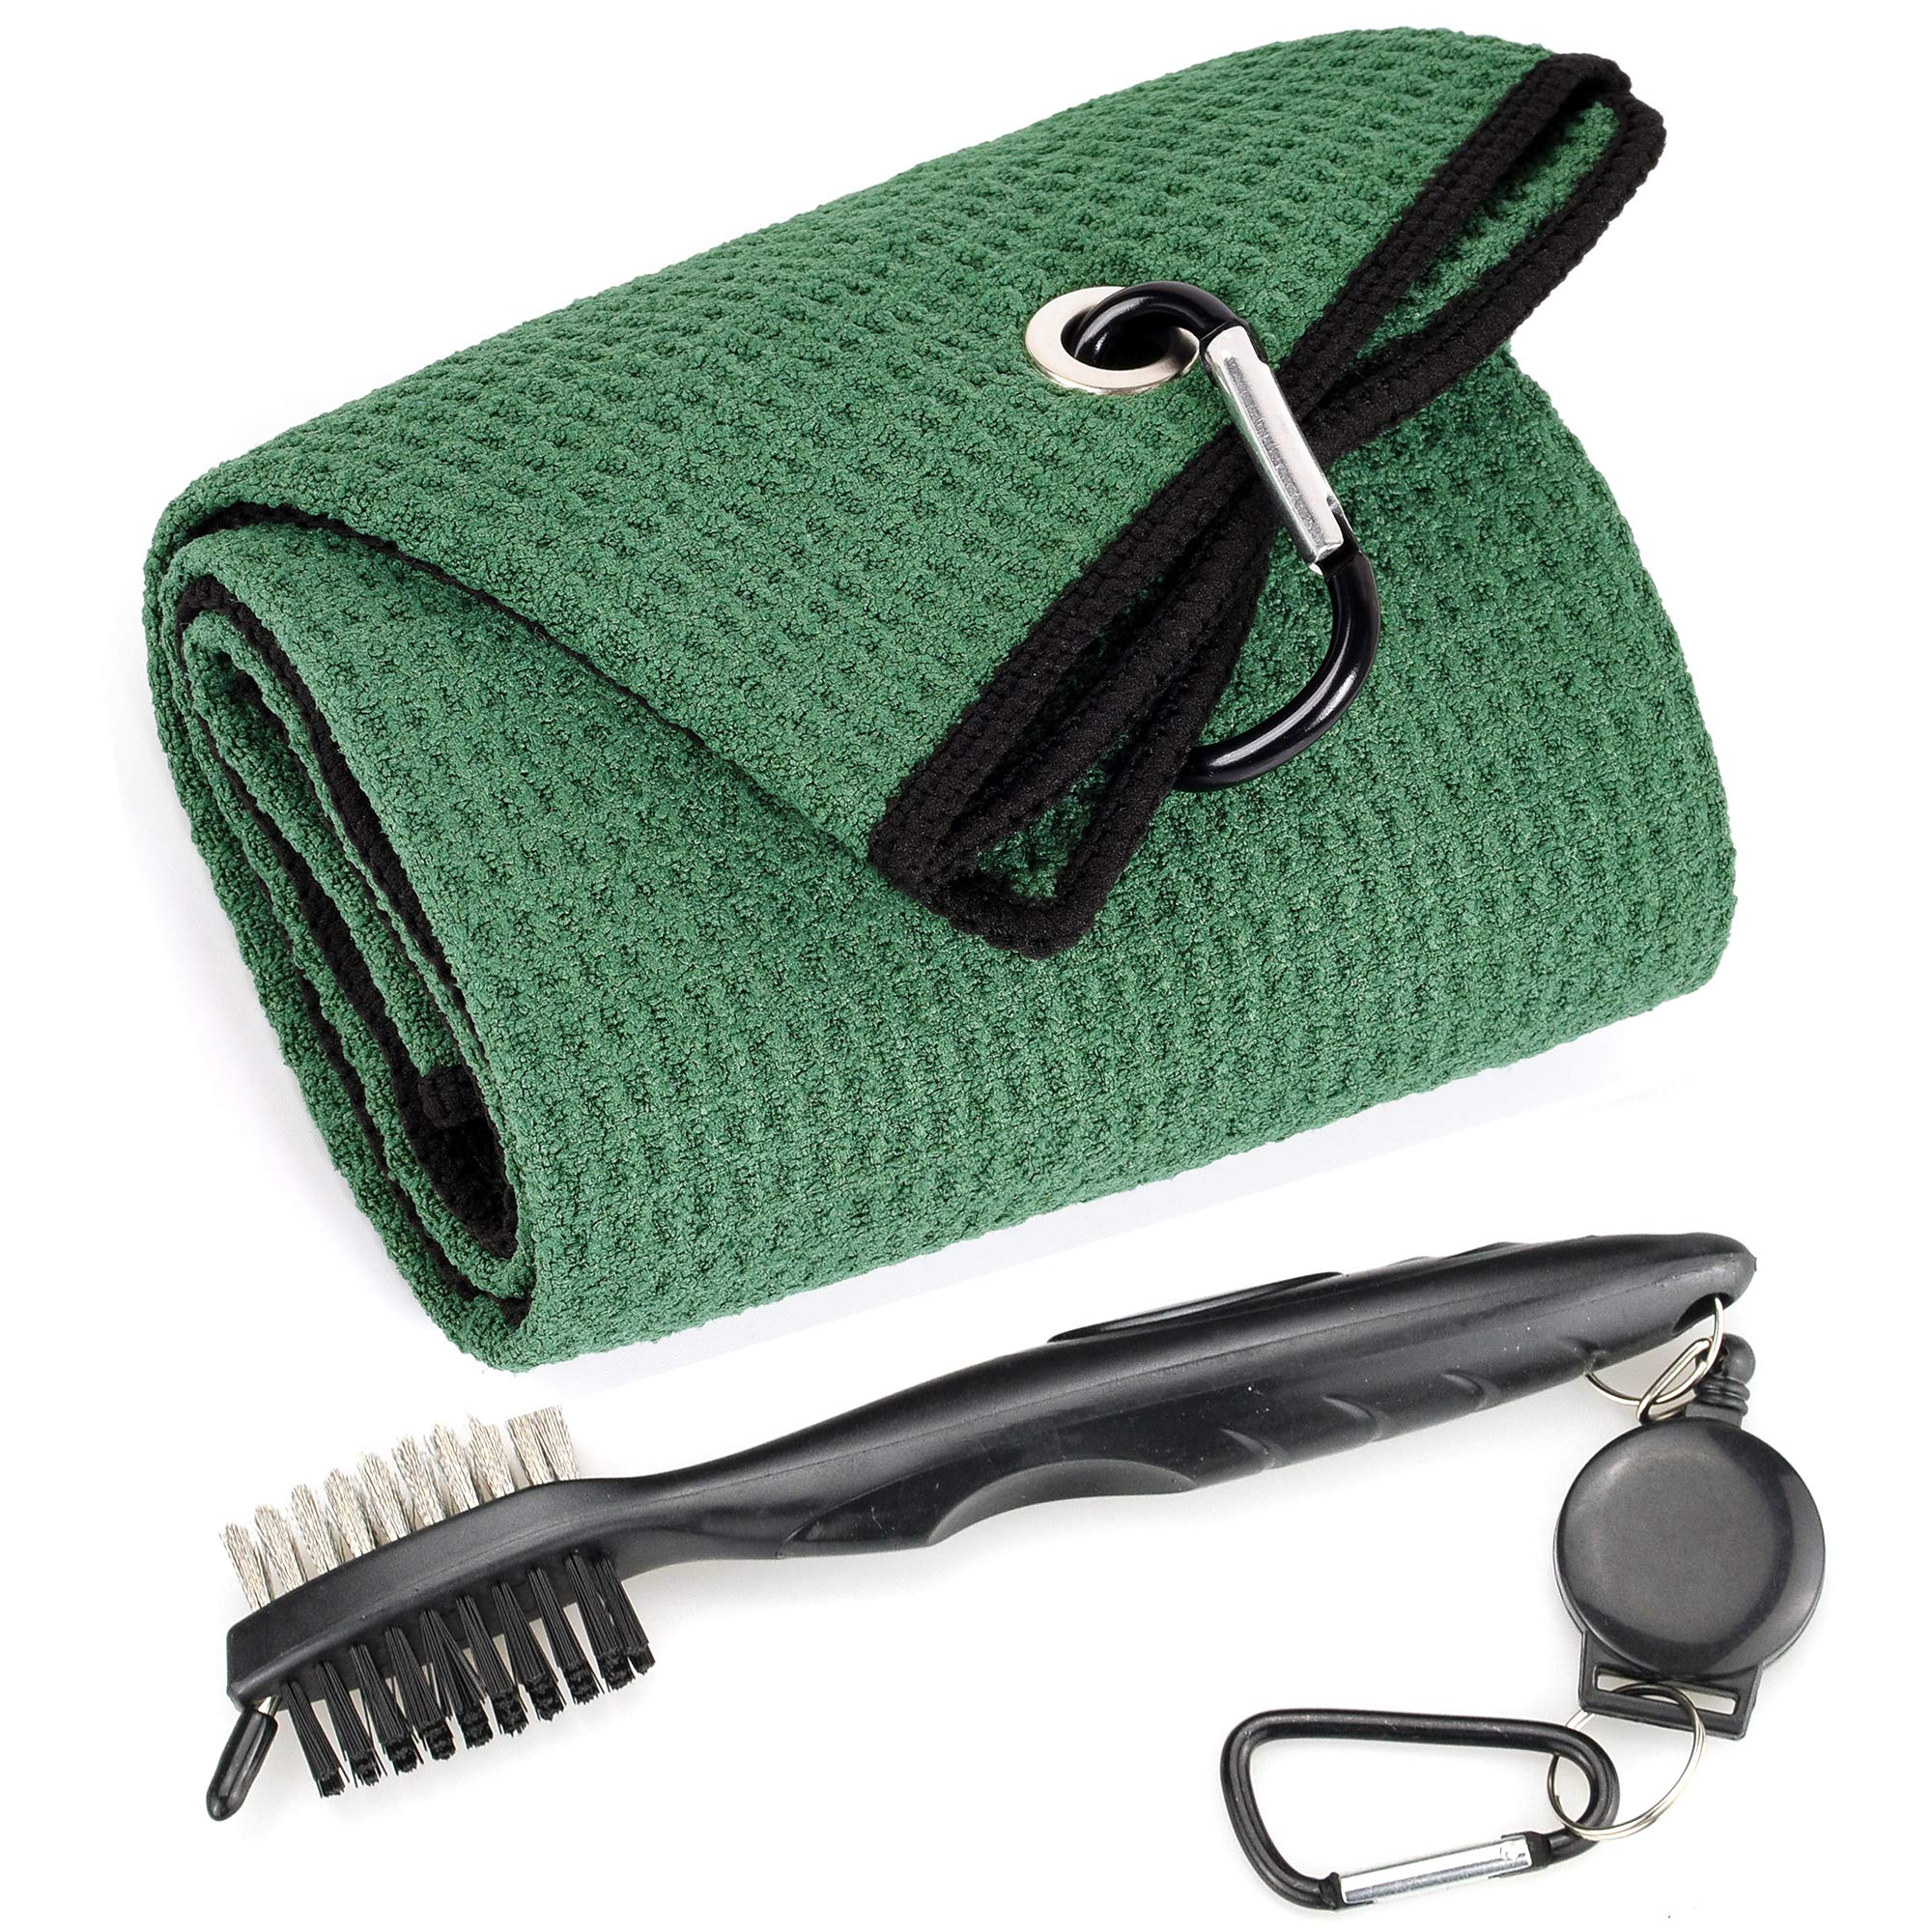 Mile High Life Microfiber Waffle Pattern Tri-fold Golf Towel | Brush Tool Kit with Club Groove Cleaner, Retractable Extension Cord and Clip (Green Towel+Black Brush) by Mile High Life